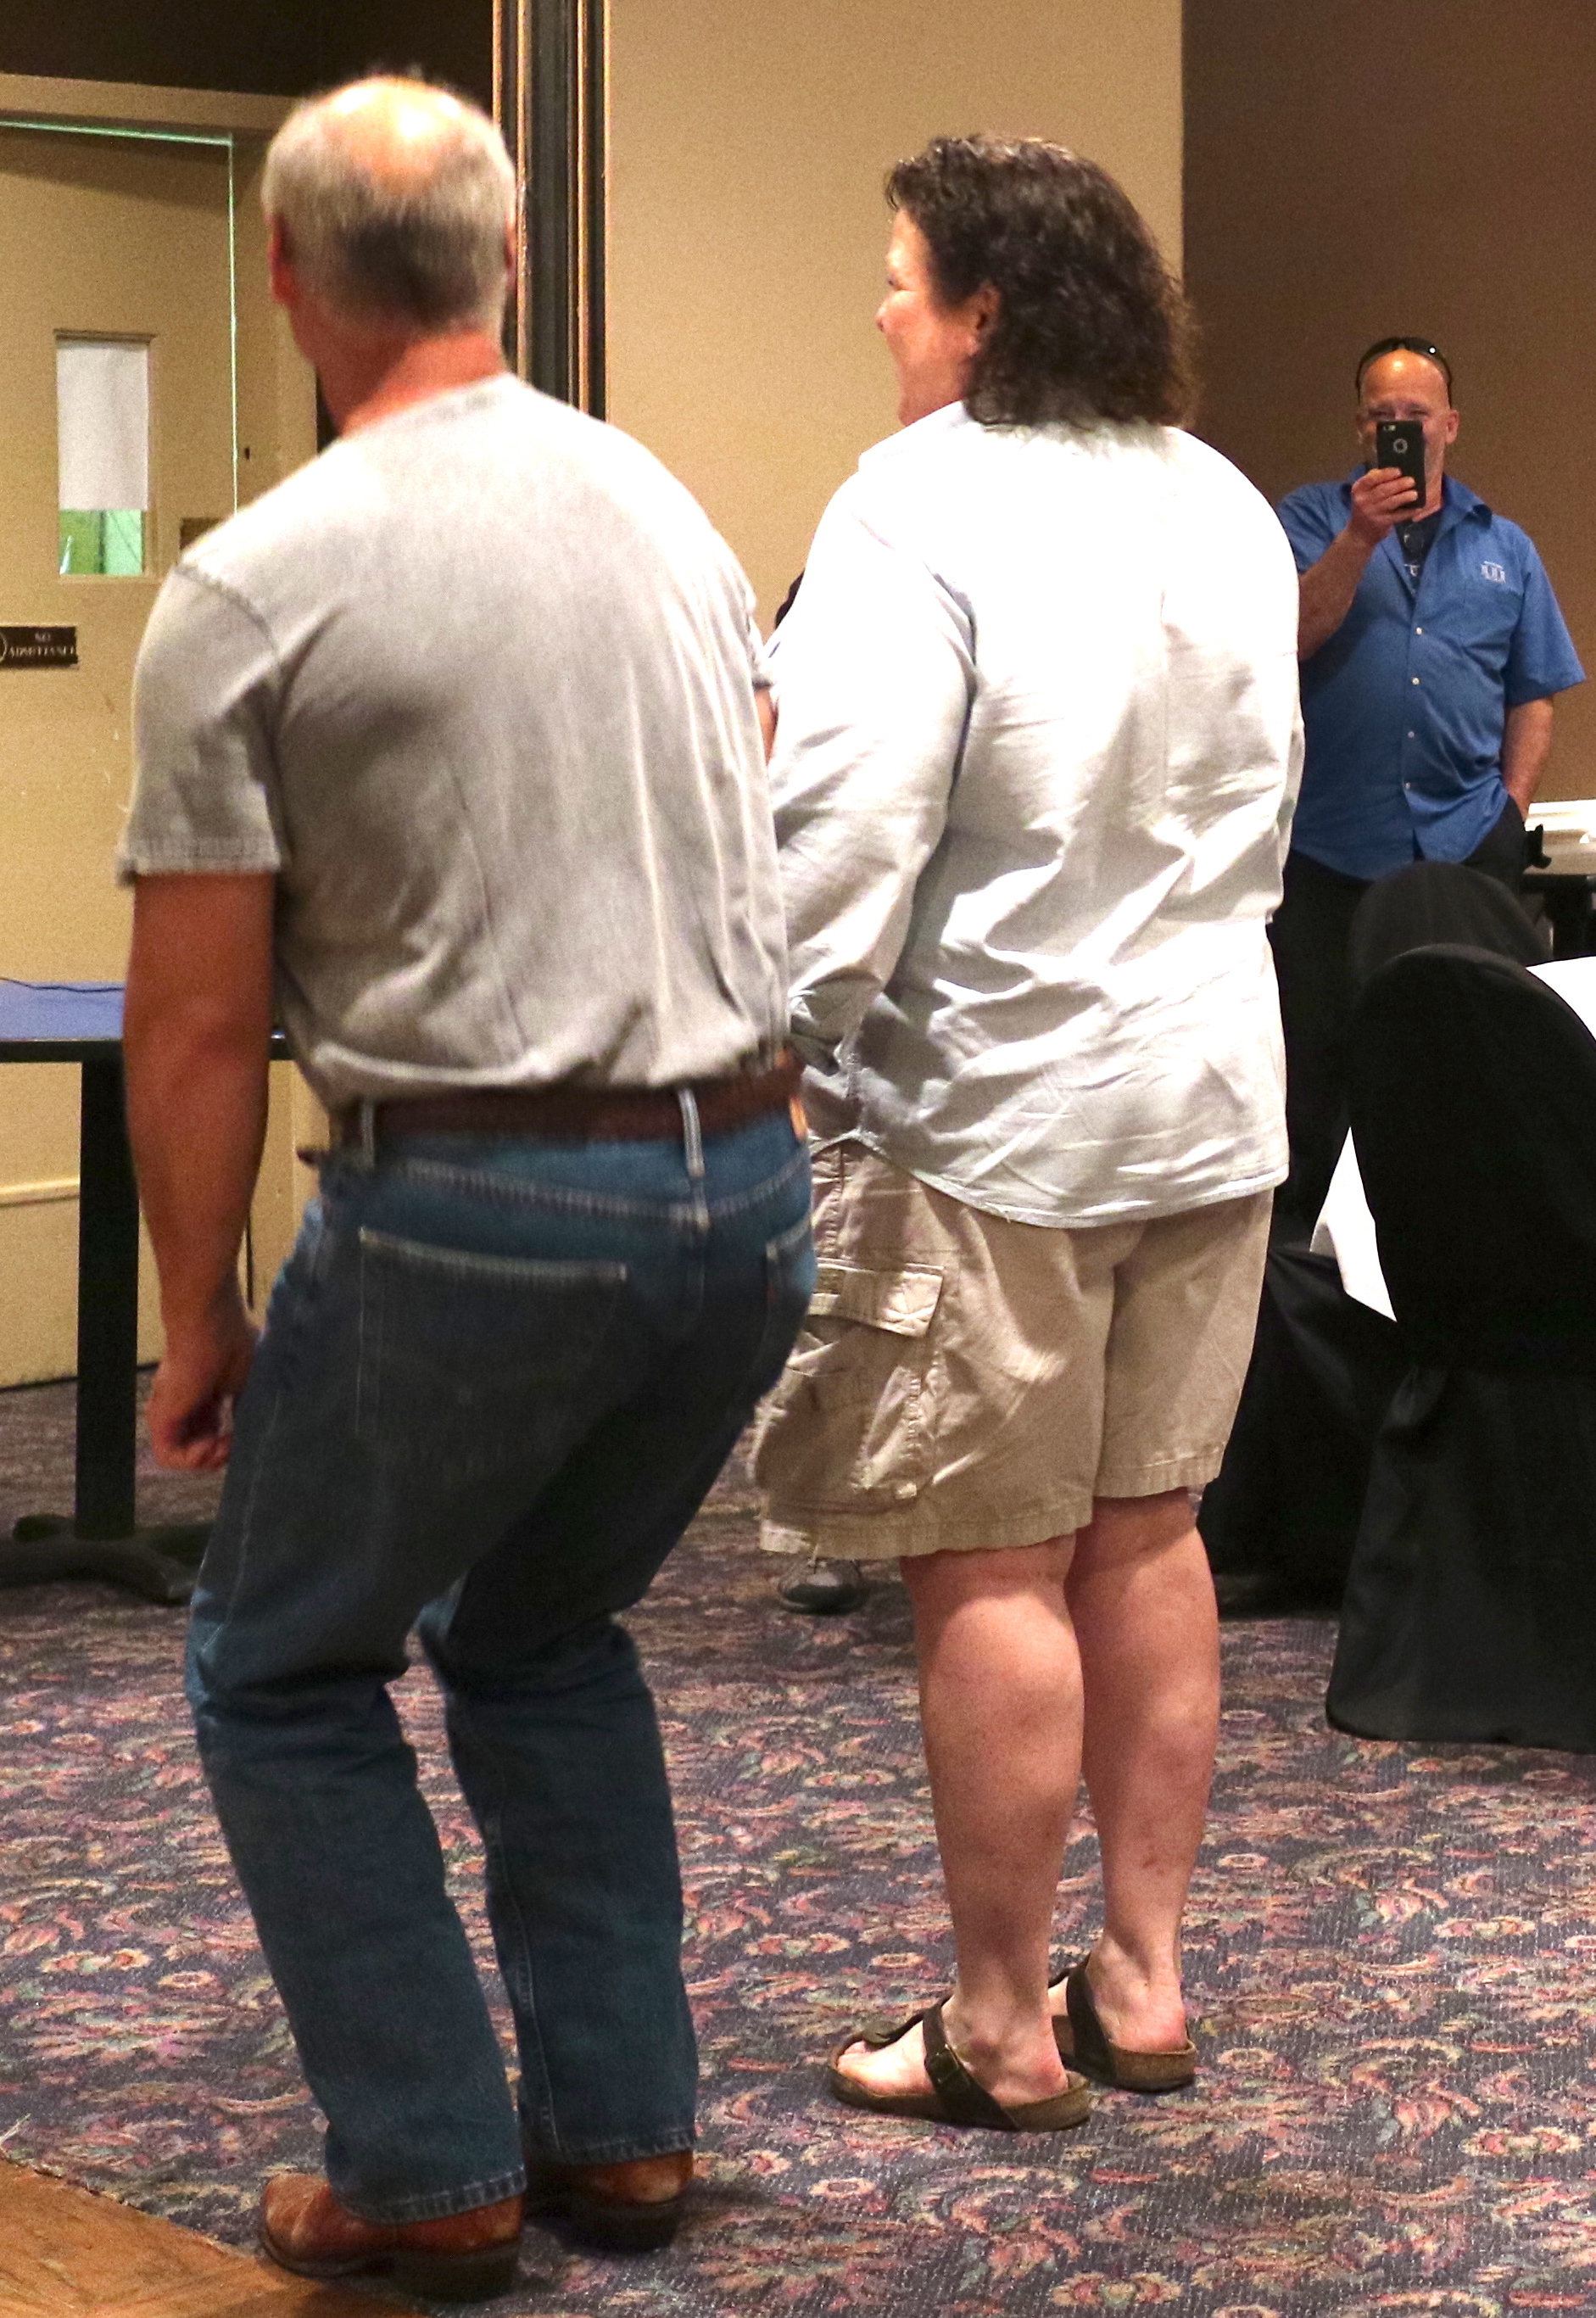 Bill Long , portraying a competition obedience dog, goes into an automatic sit at halt as  Carmi Swift  portrays a successful exhibitor. Kevin Sartain  captures it on video.